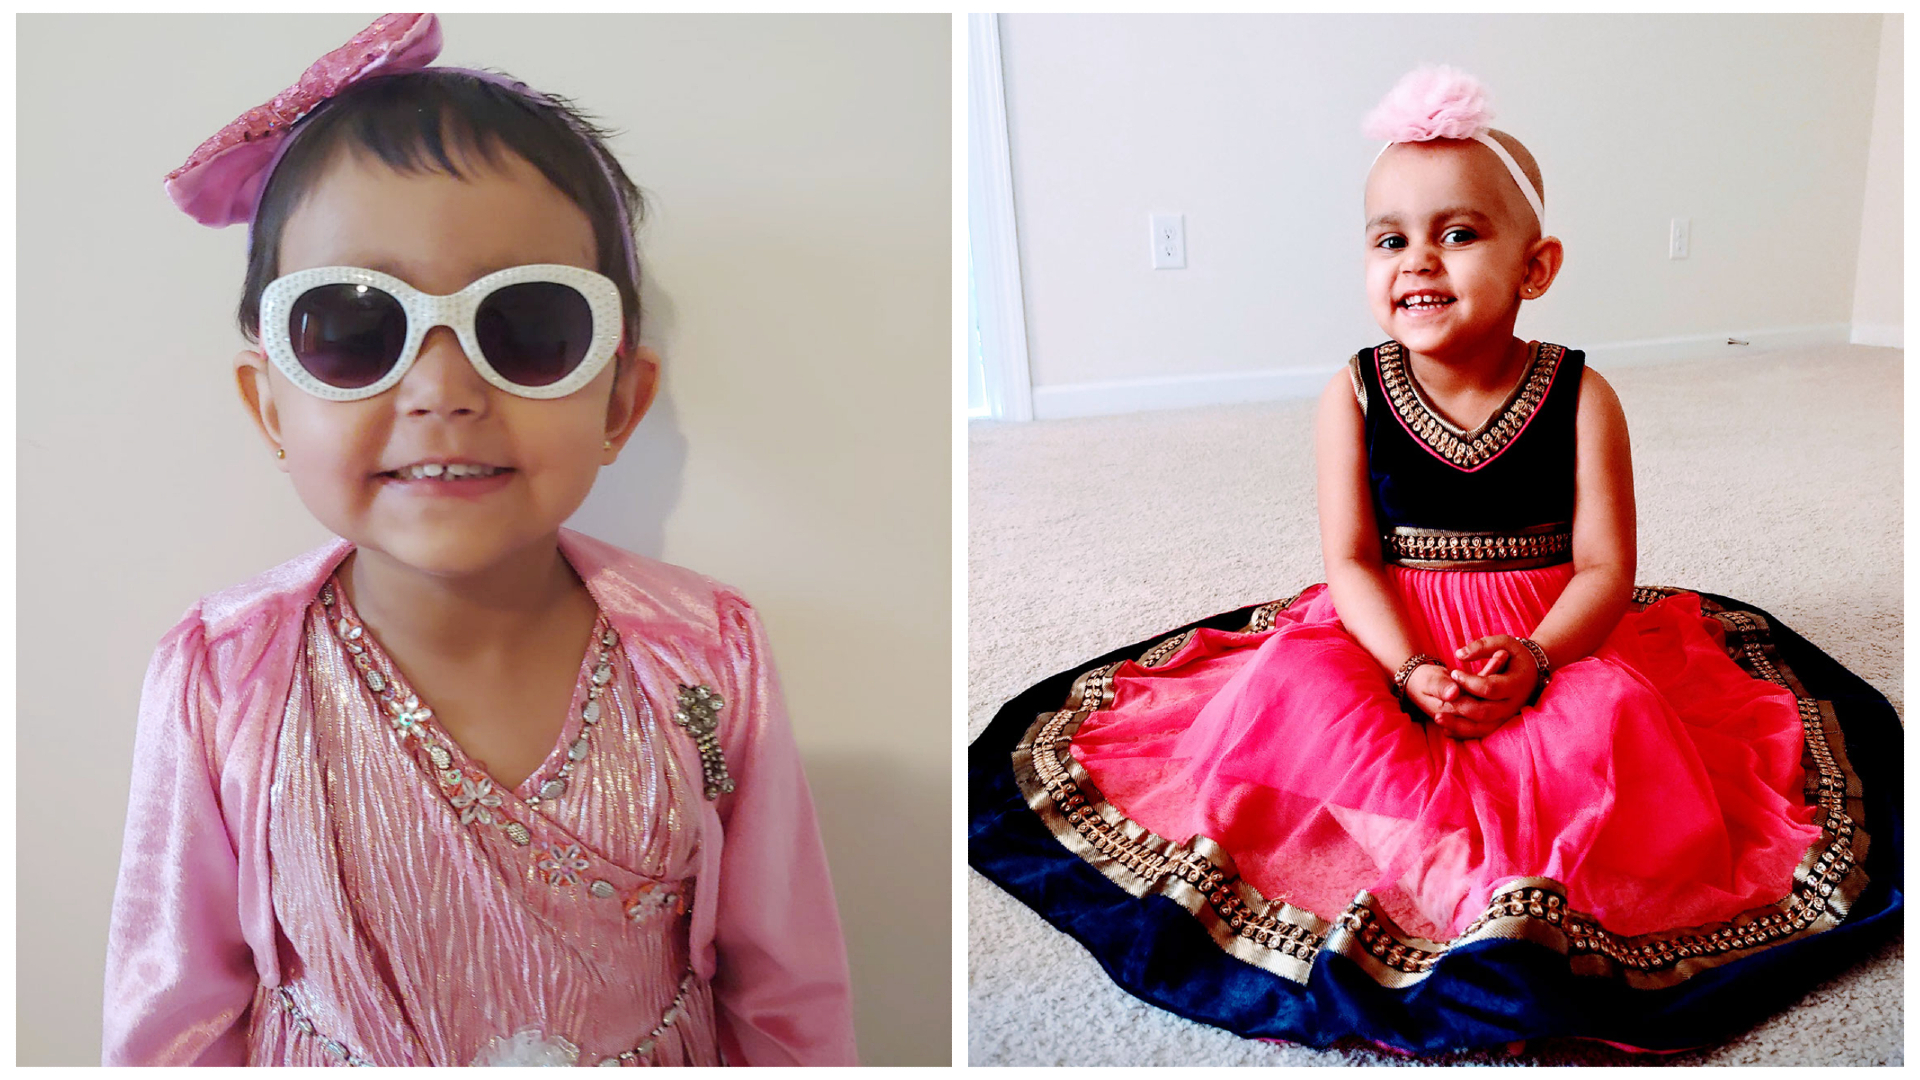 After being diagnosed with leukemia at 2 years old, Myra is in remission and ready to be a cancer-free kid.